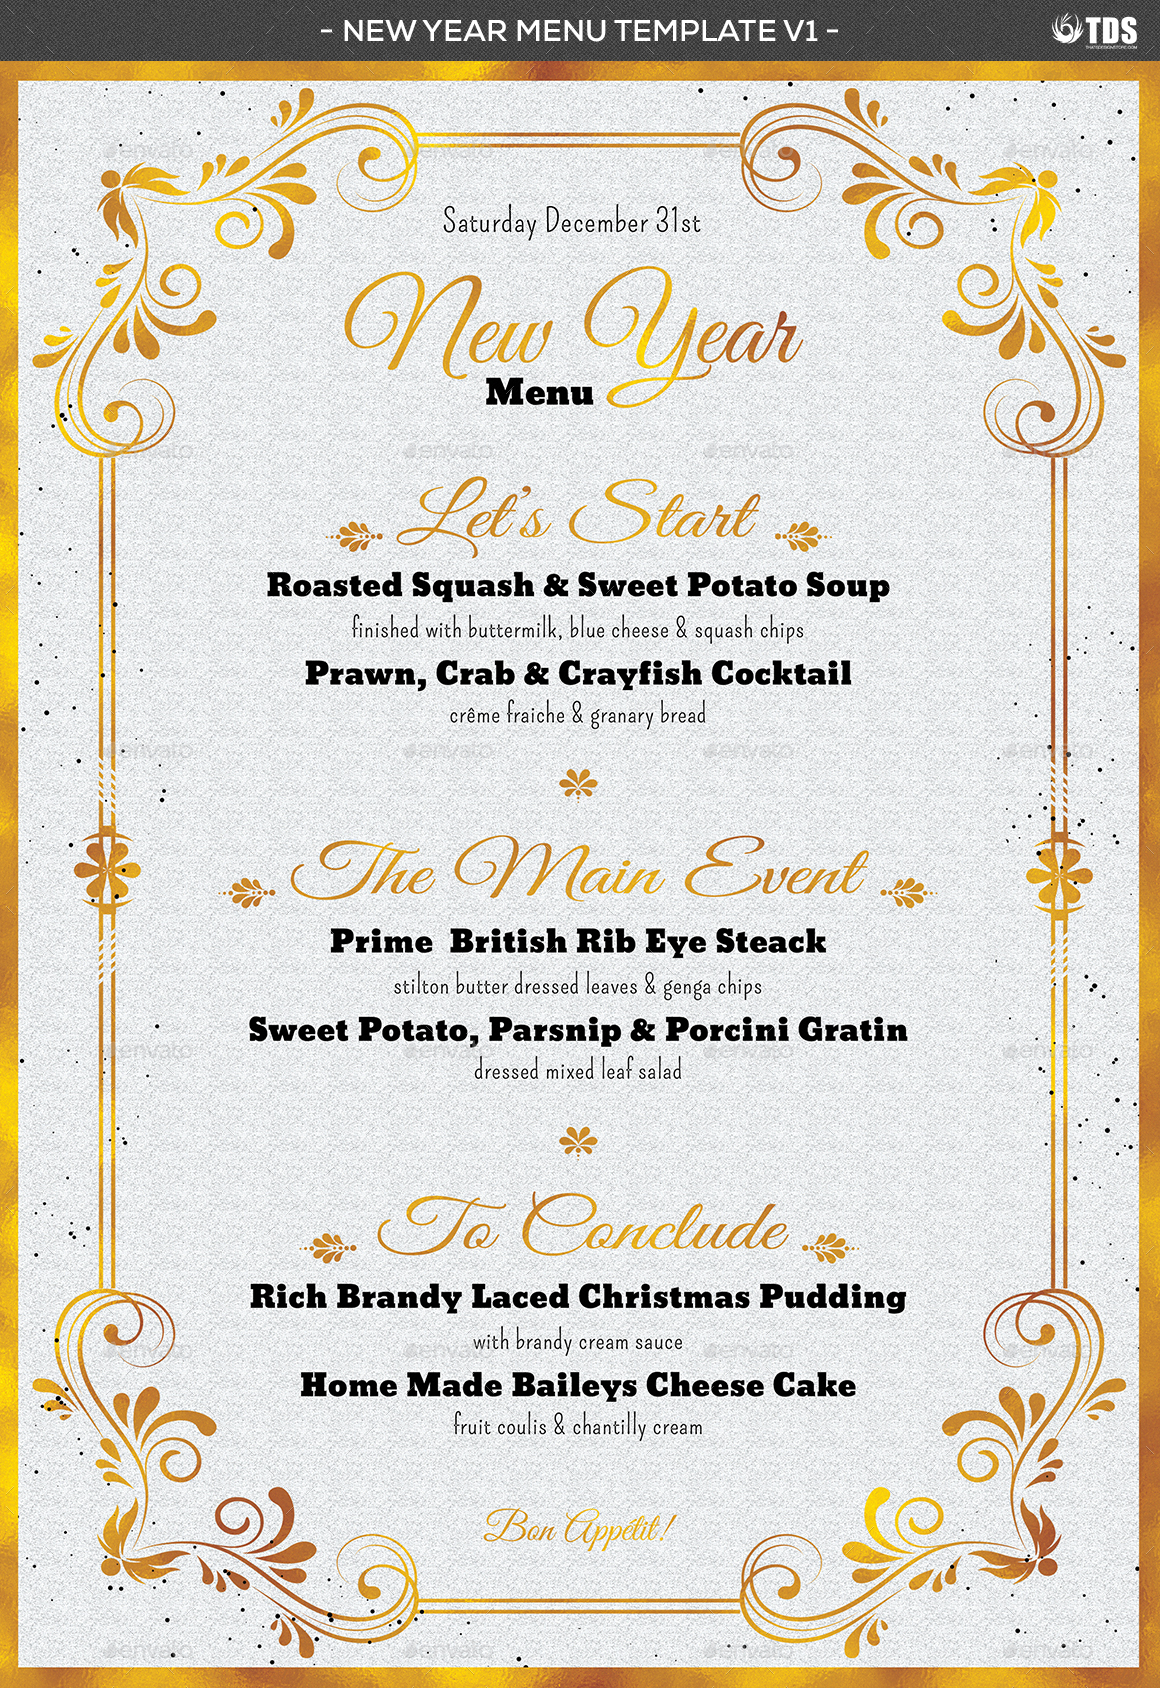 new year menu template v1 by lou606